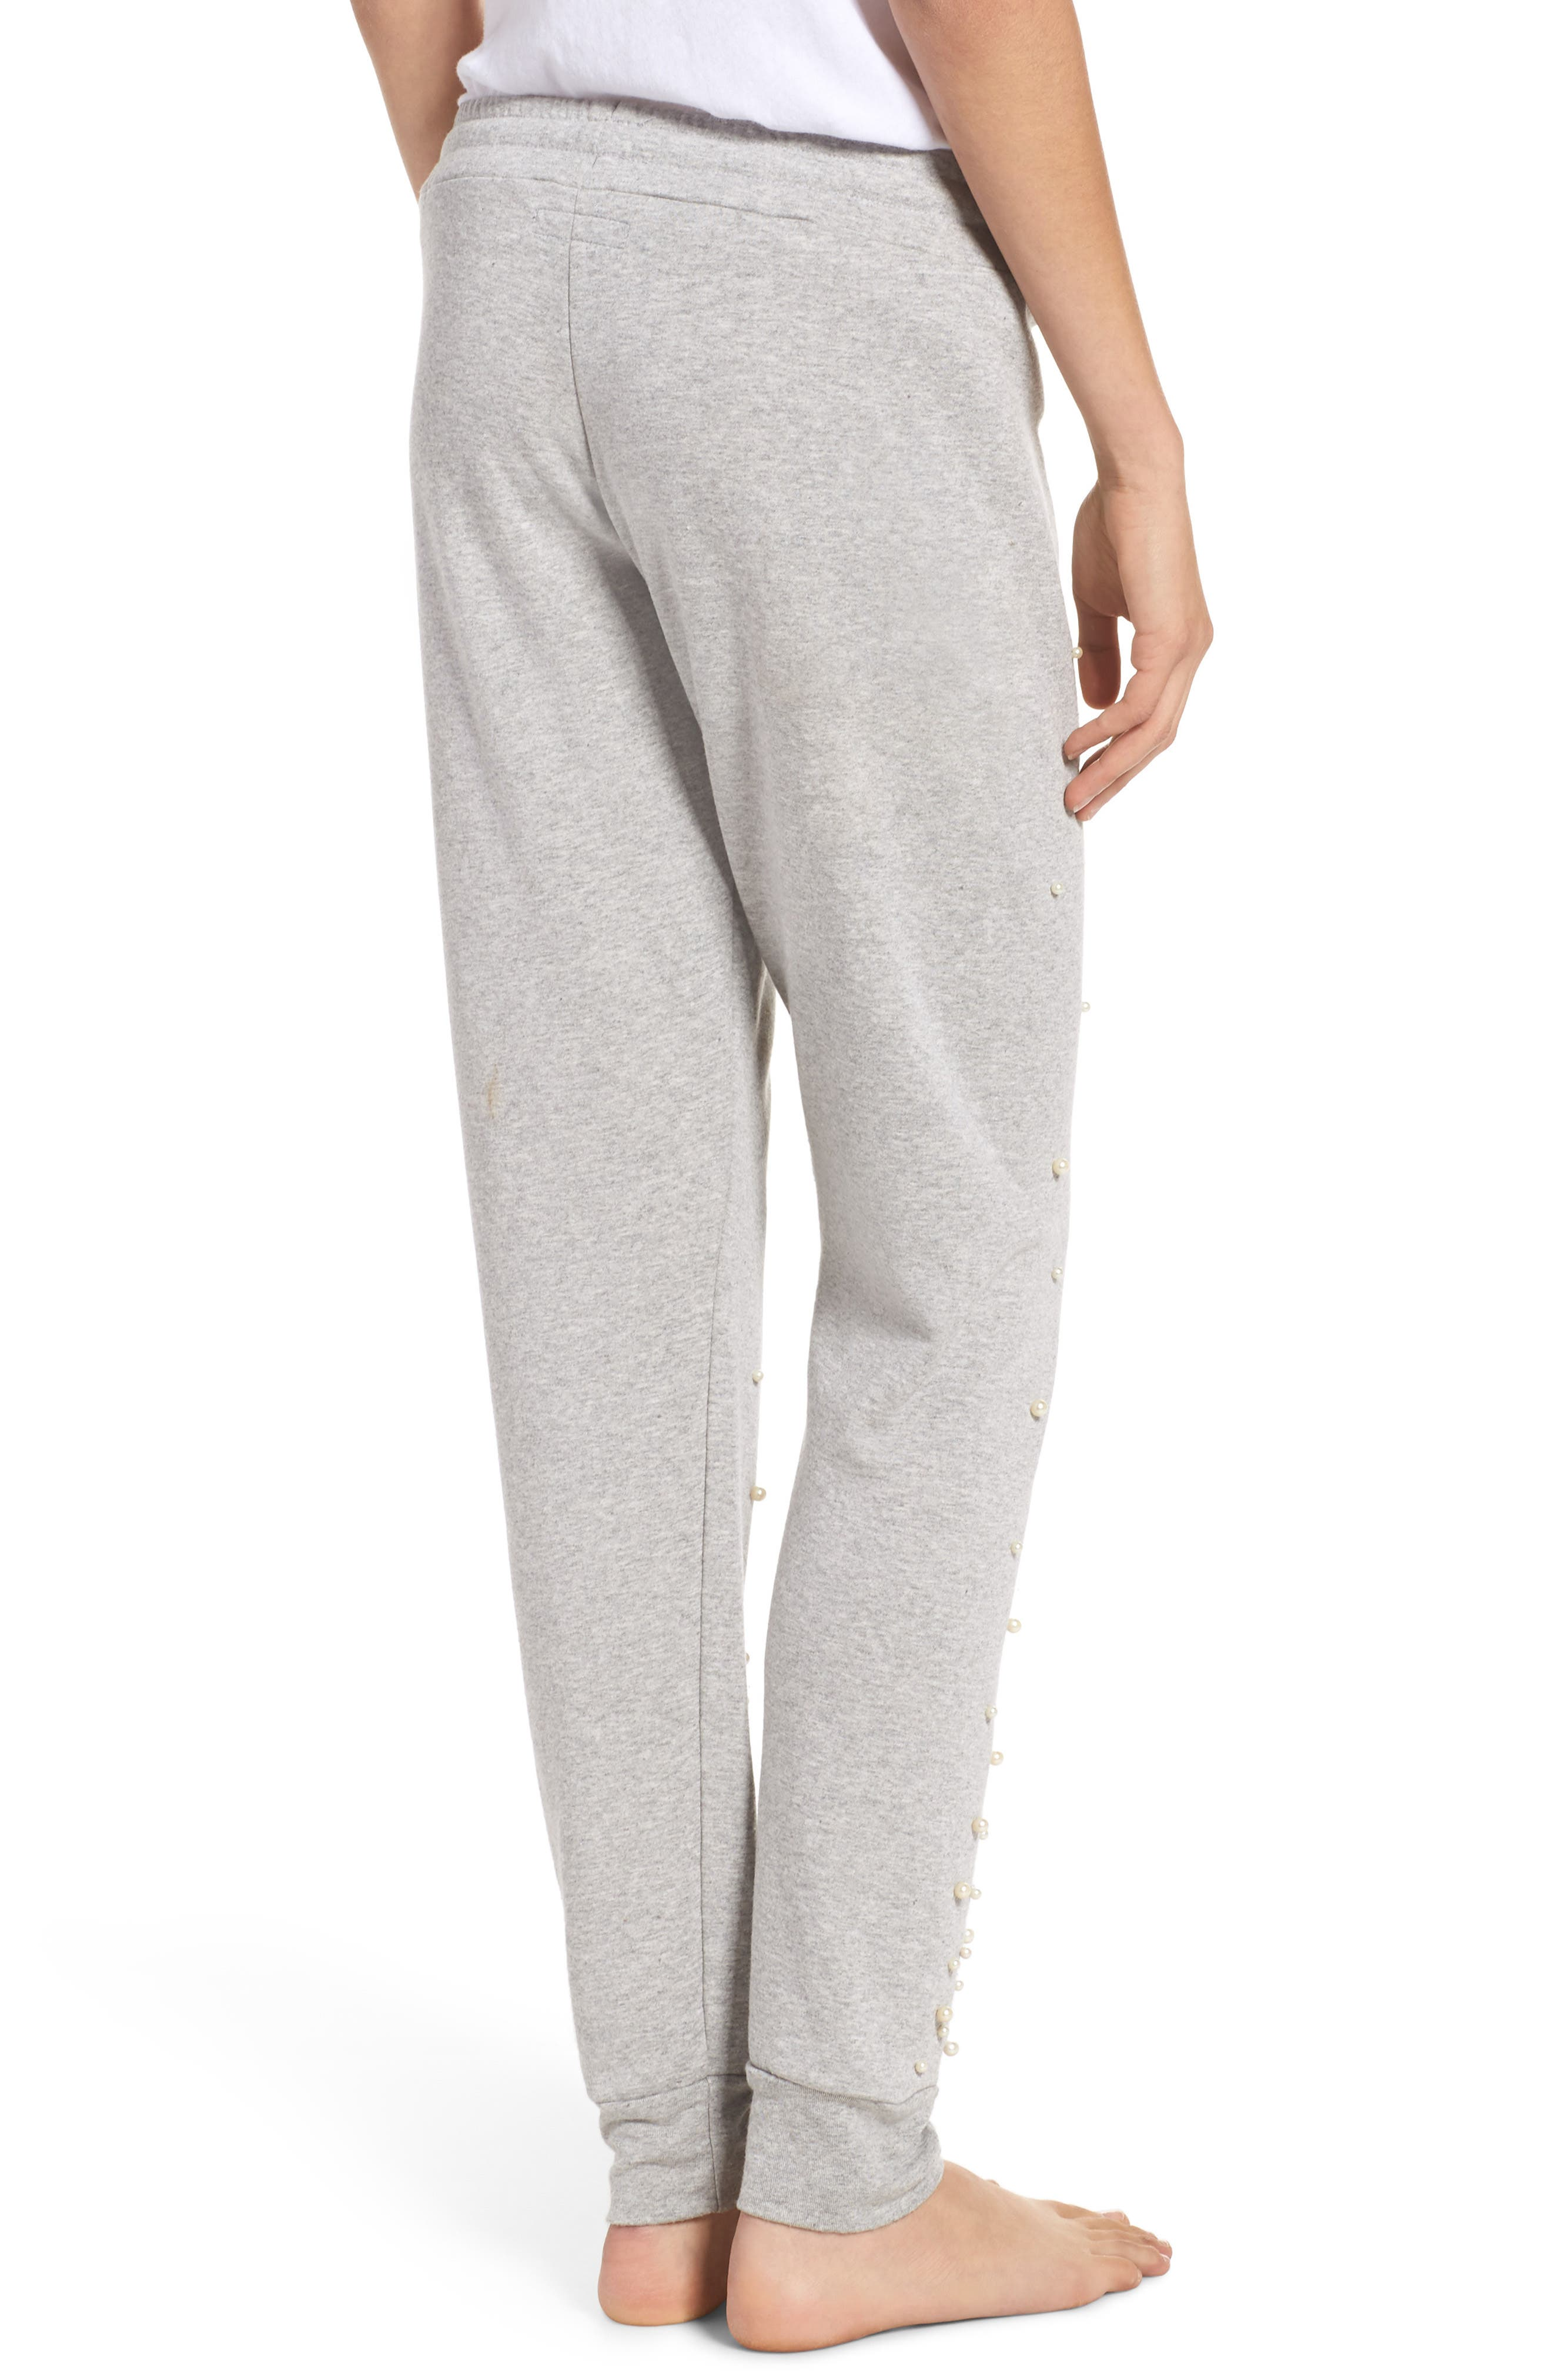 Price Imitation Pearl Embellished Lounge Pants,                             Alternate thumbnail 2, color,                             Heather Grey